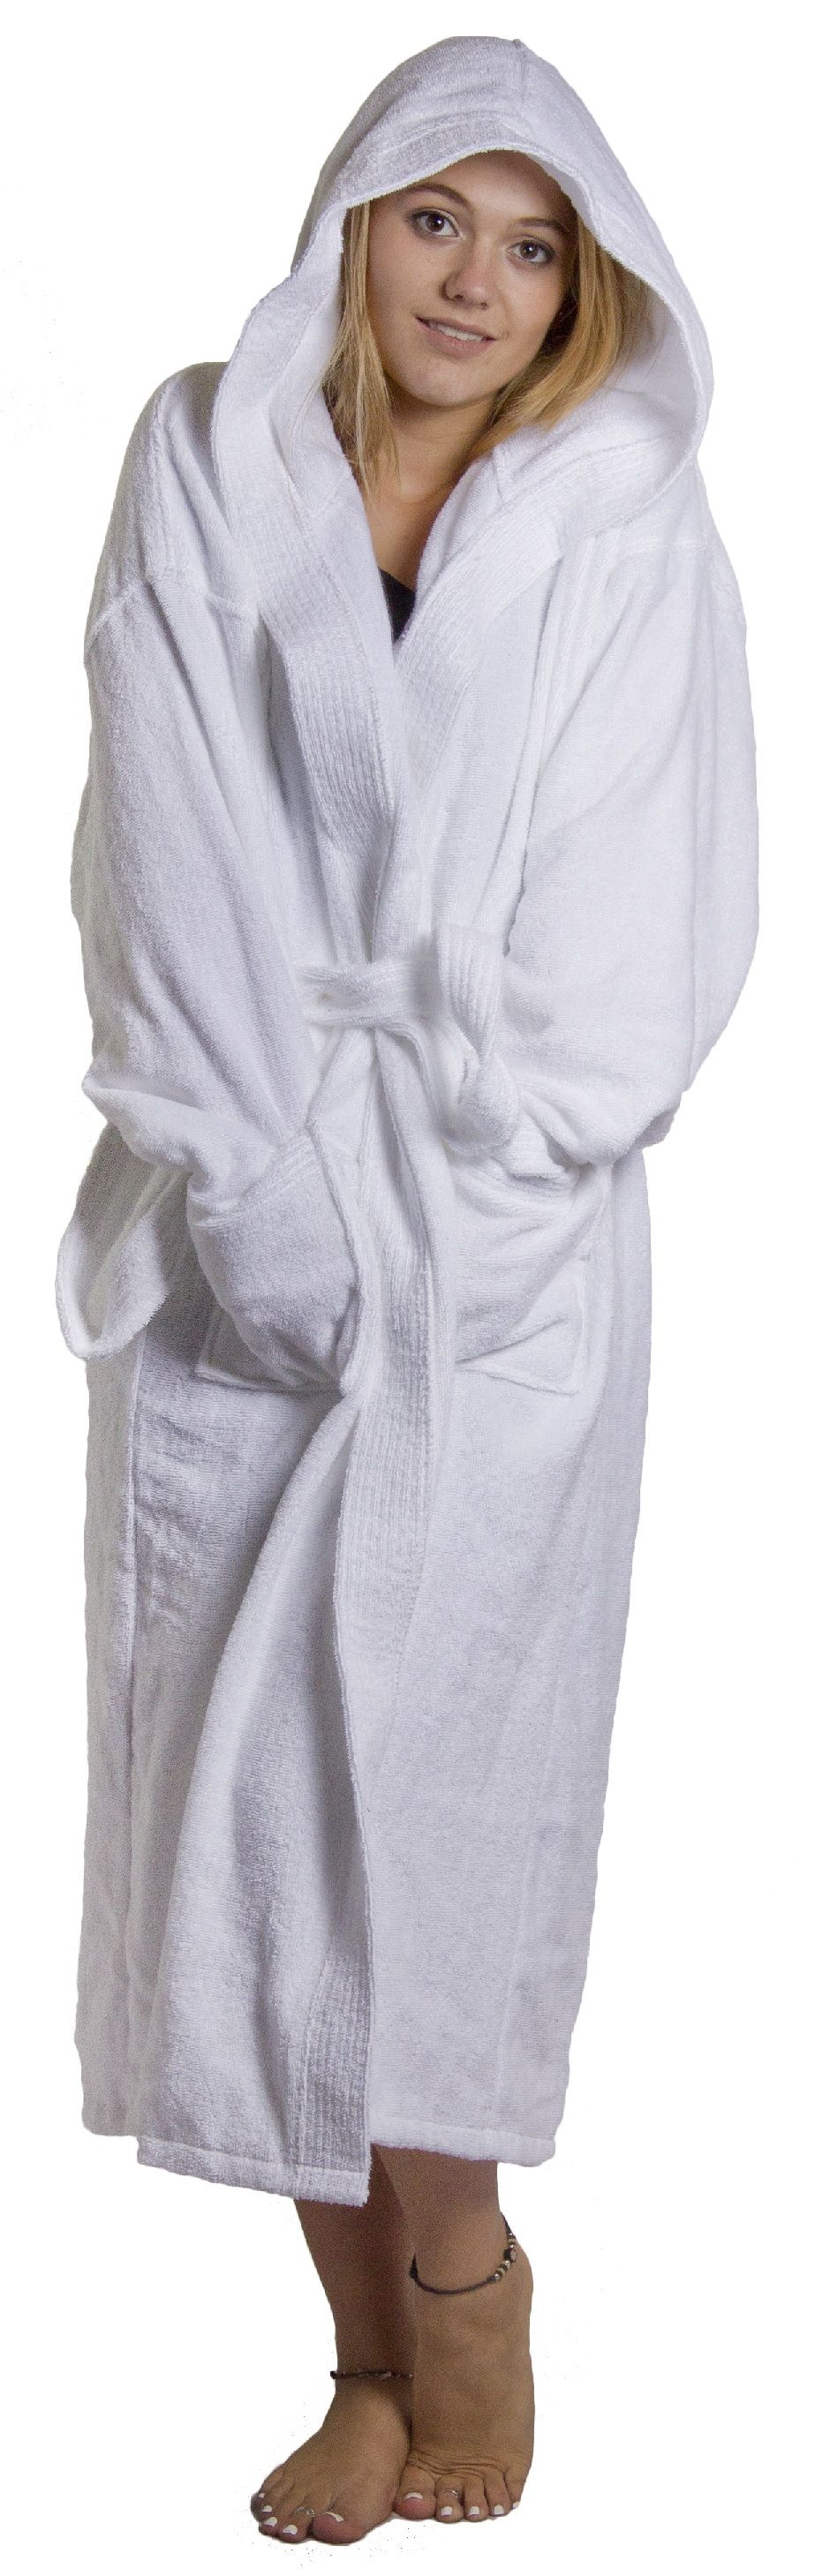 d20e67621f Bathrobe hooded robe 100% cotton plus xl 2xl 3xl 4xl mens ladies ...